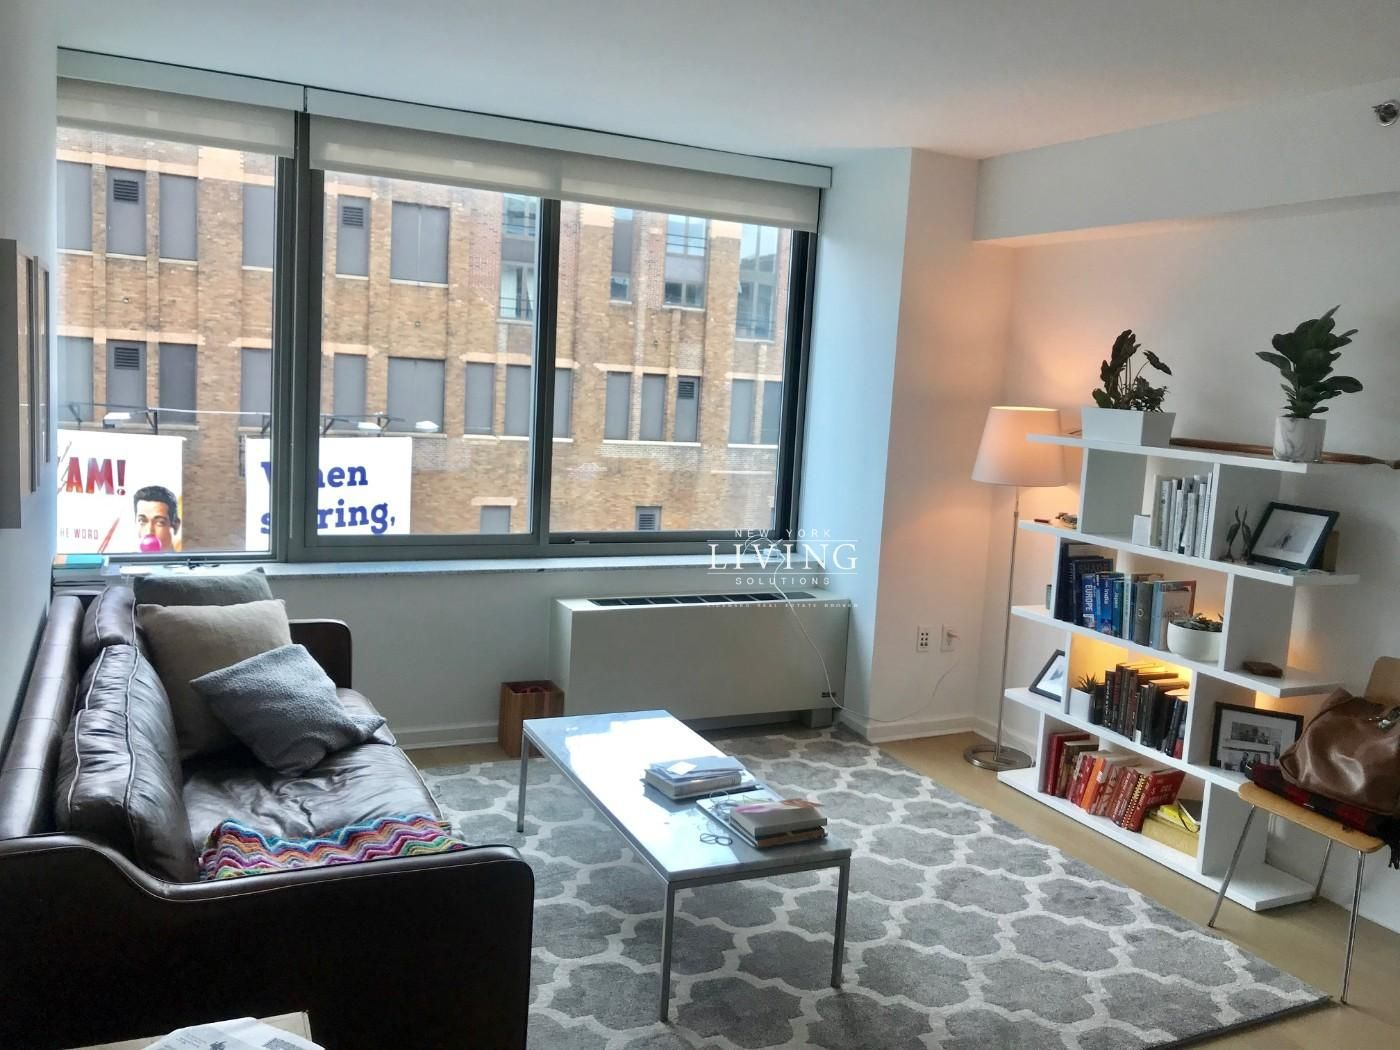 1 Bedroom 1 Bathroom Apartment For Sale In Chelsea Apartment